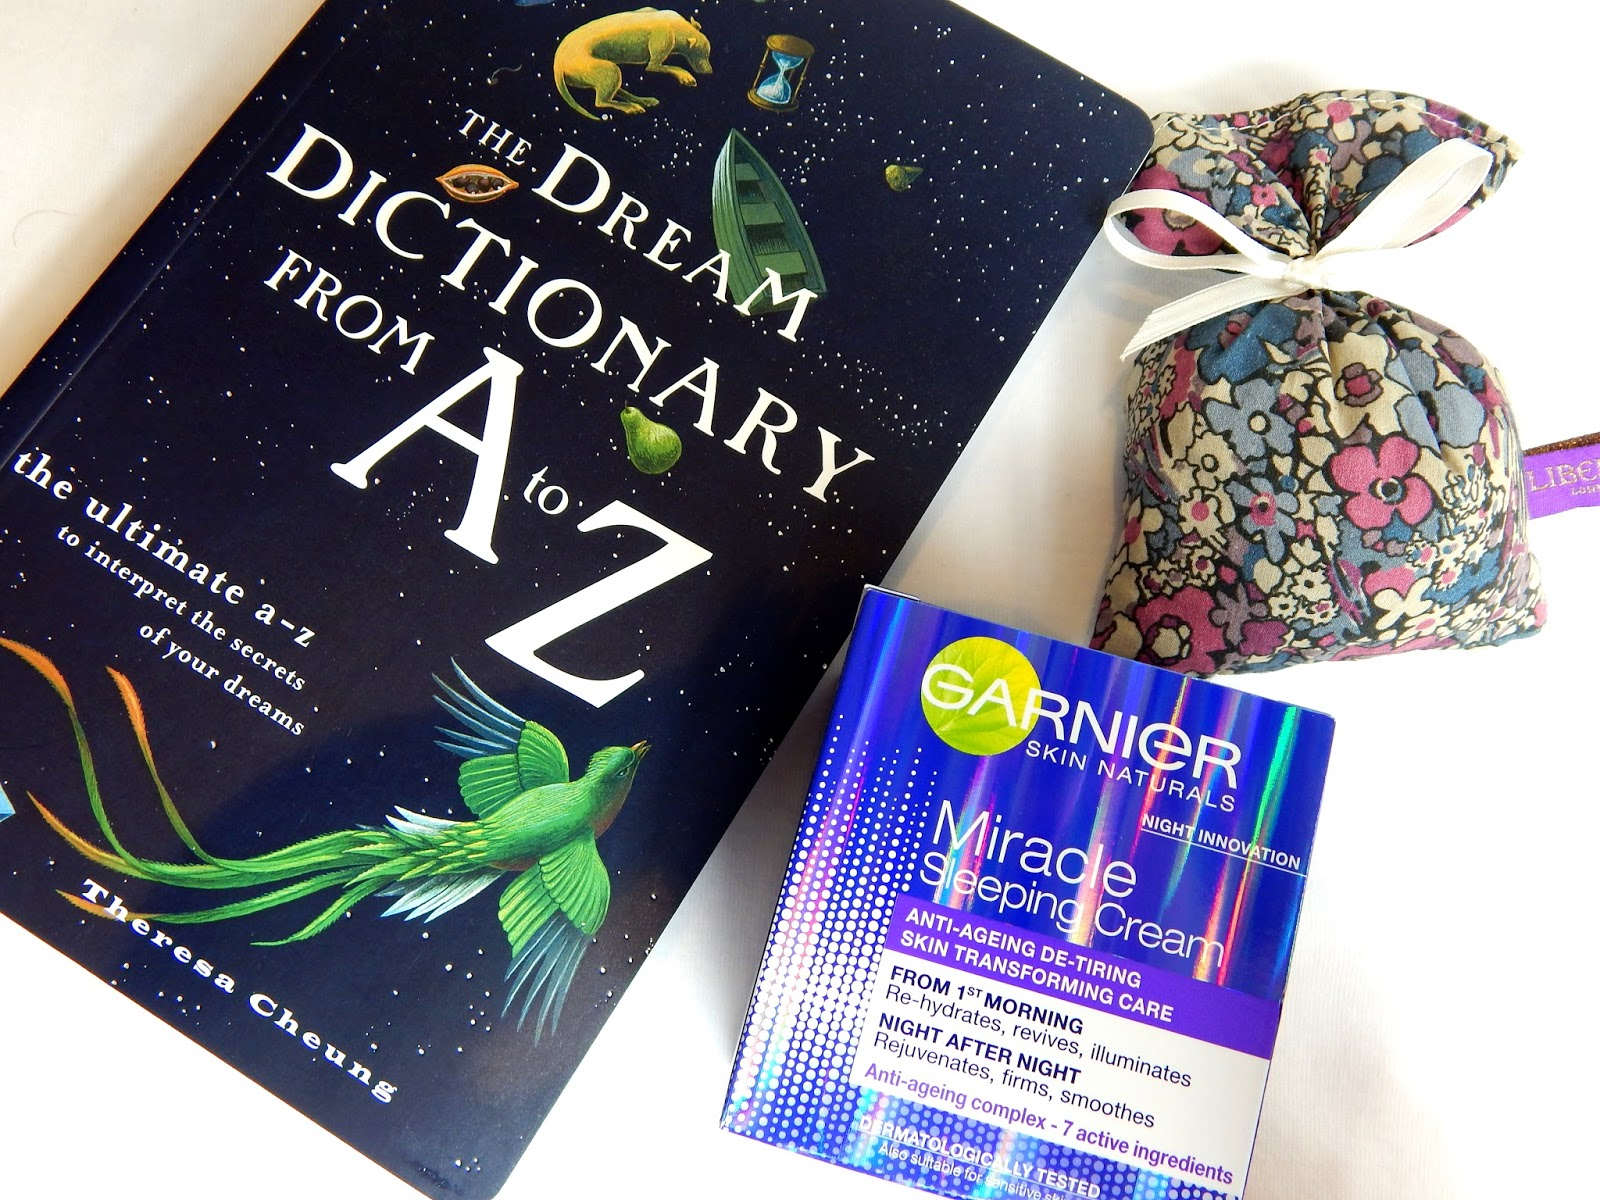 The dream dictionary from A-z, liberty london, garnier miracle sleeping cream